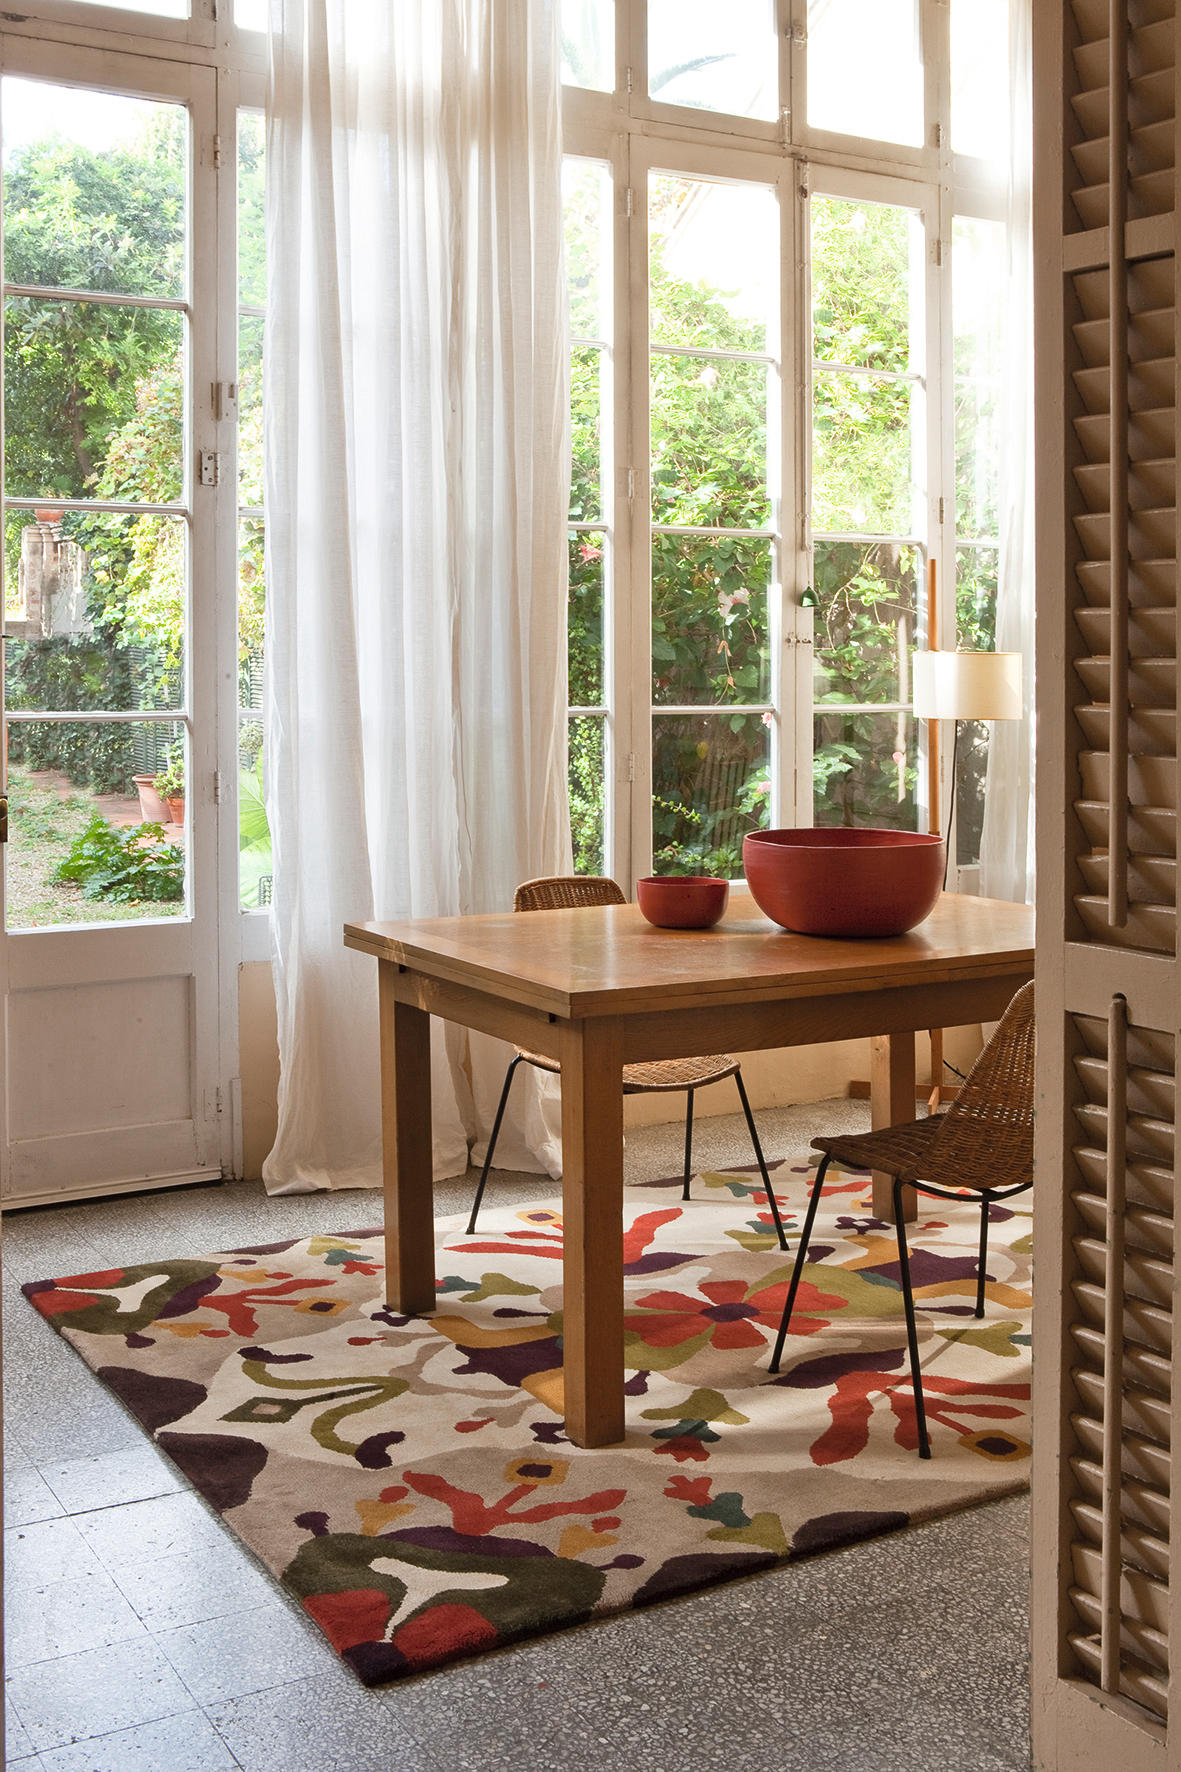 Victoria 1 Rugs Designer Rugs From Nanimarquina